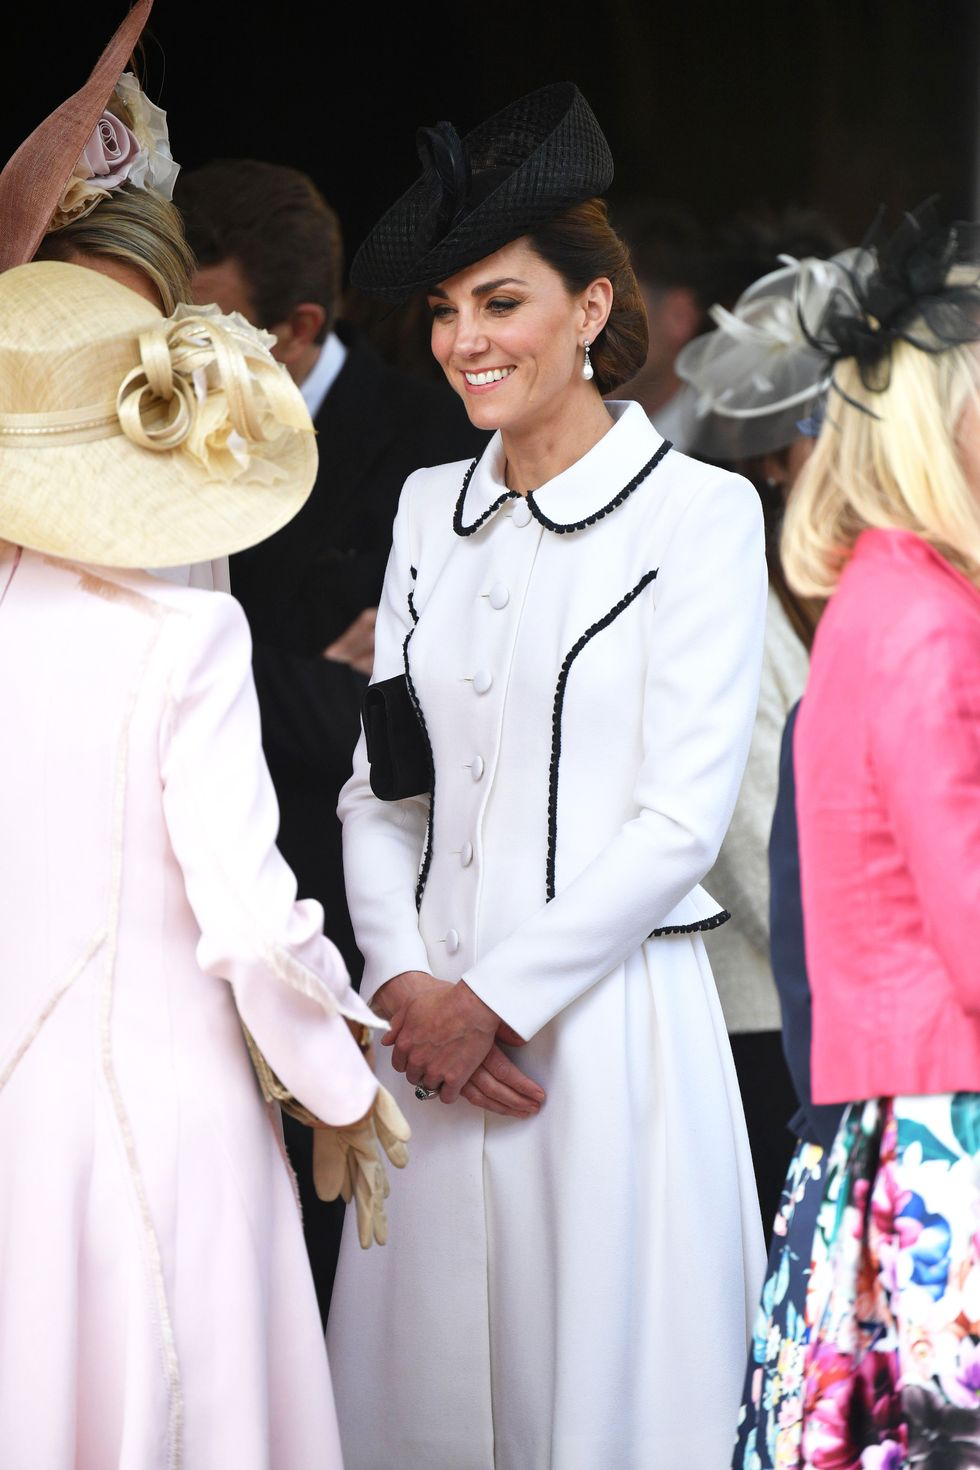 Kate Middleton Channels Meghan Markle's Ascot Look With Catherine Walker Coat Dress on Garter Day